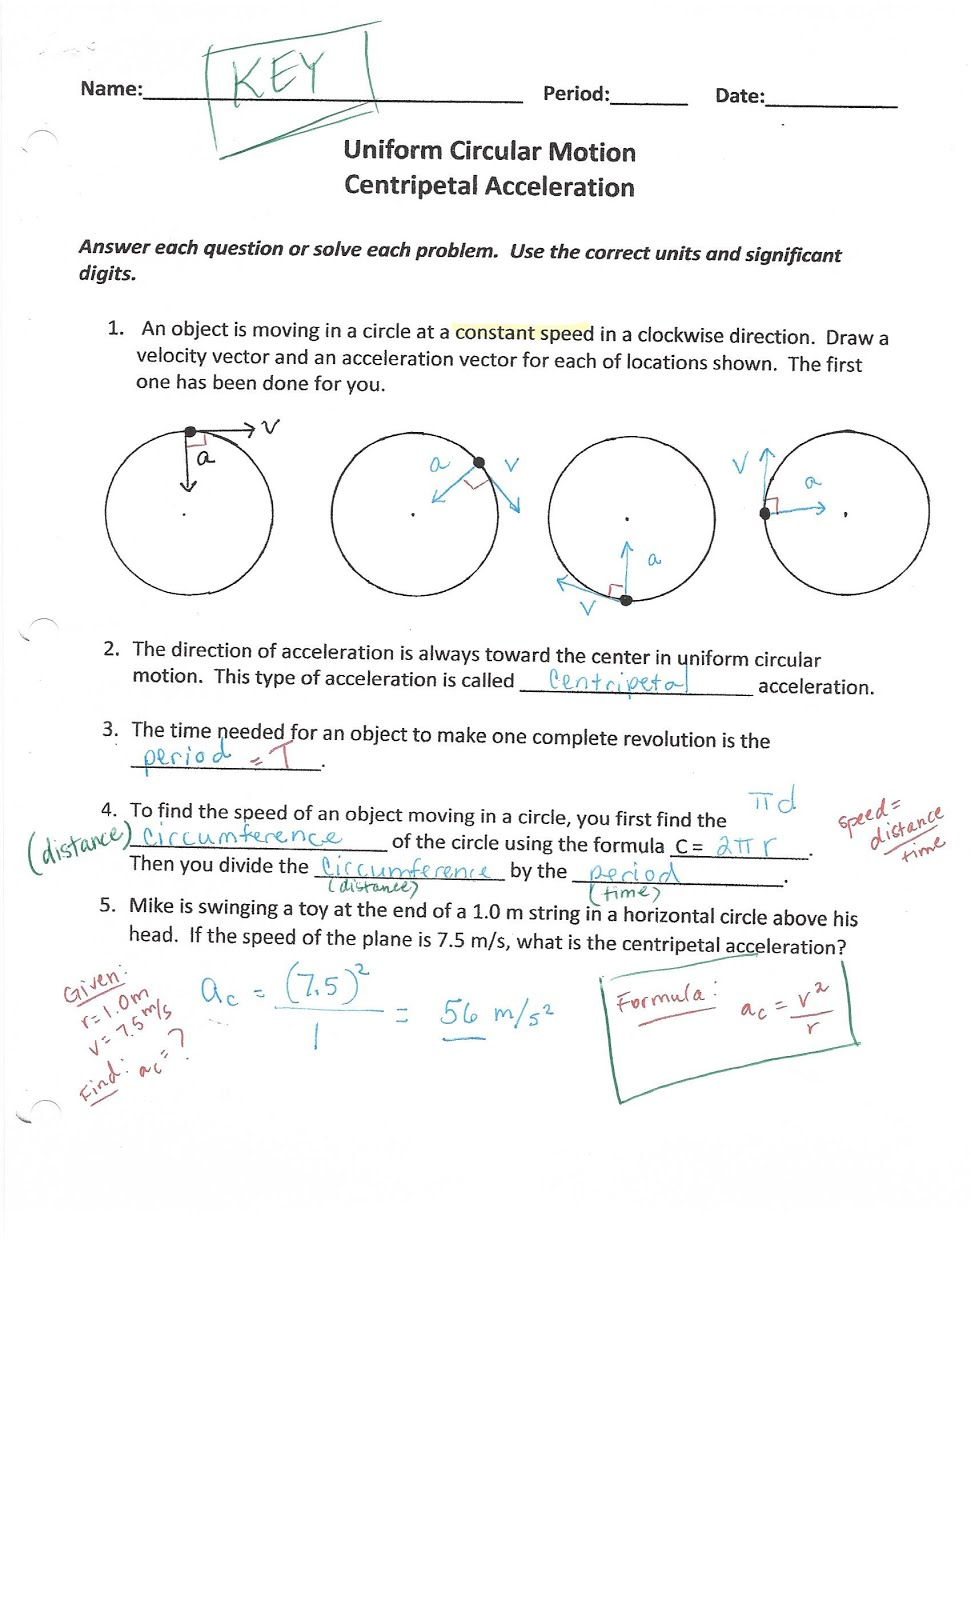 worksheet Law Of Universal Gravitation Worksheet Key physics with coach t centripetal acceleration universal gravitation and laws worksheet answers